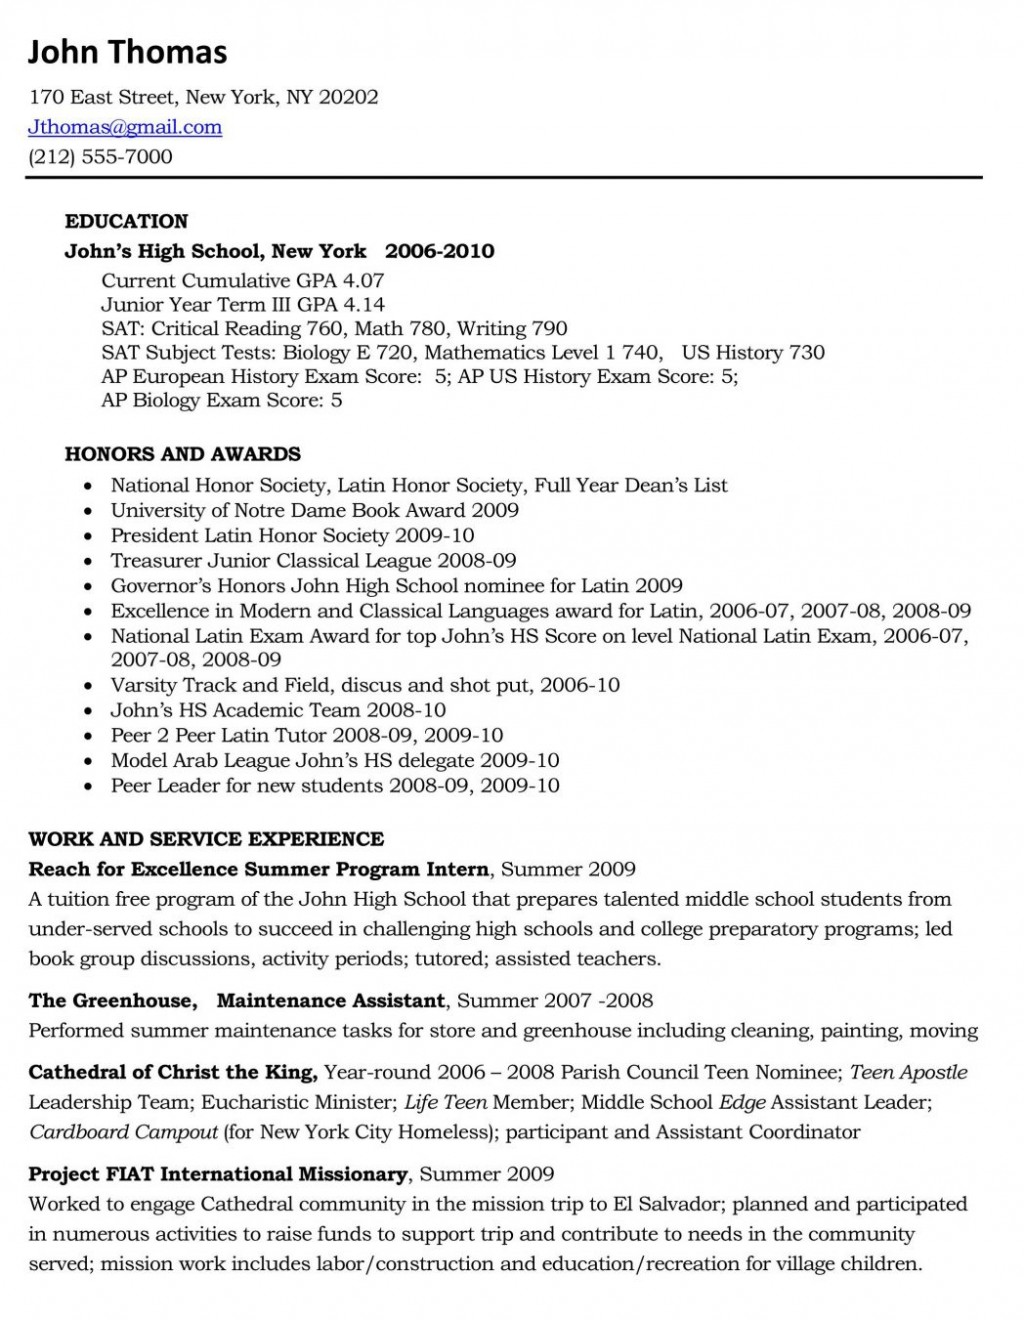 008 Essay On Texting Resume Jpg Persuasive Should Cellphones Allowed In S Cell Phones Not School Reasons Why Argumentative Banned Mobile 1048x1351 Fantastic Be Large